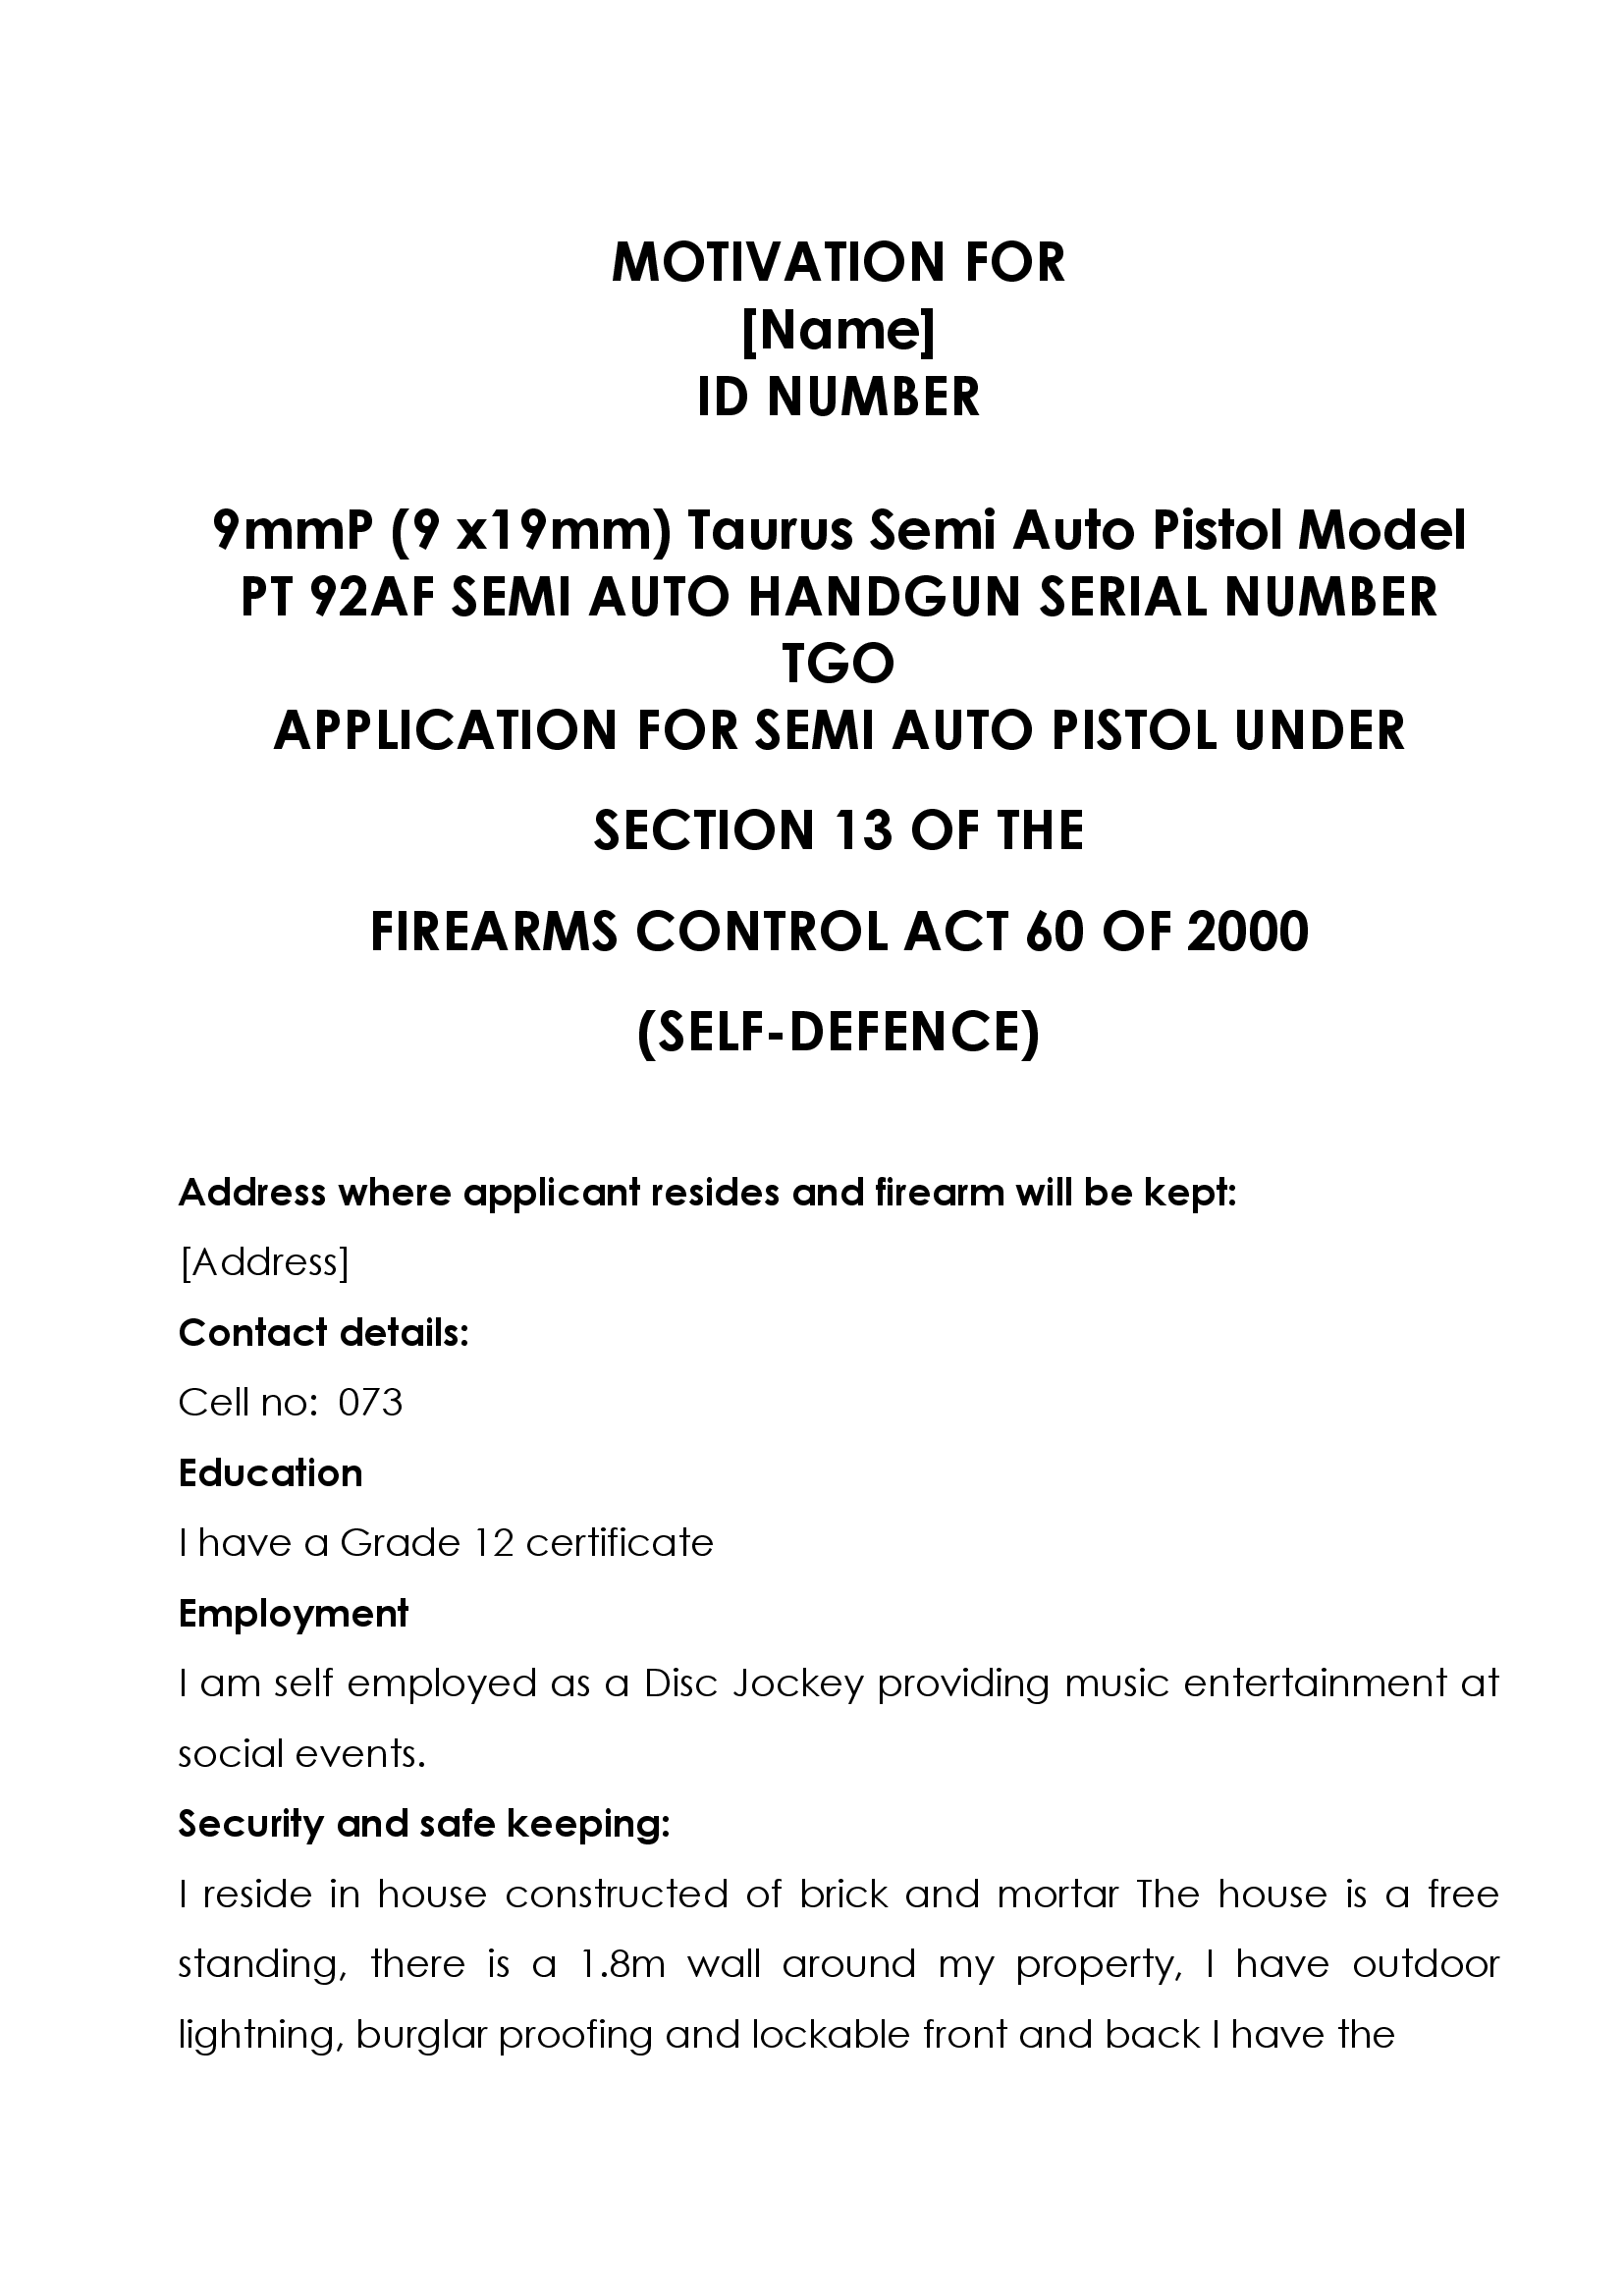 download firearm licence motivation form formfactory